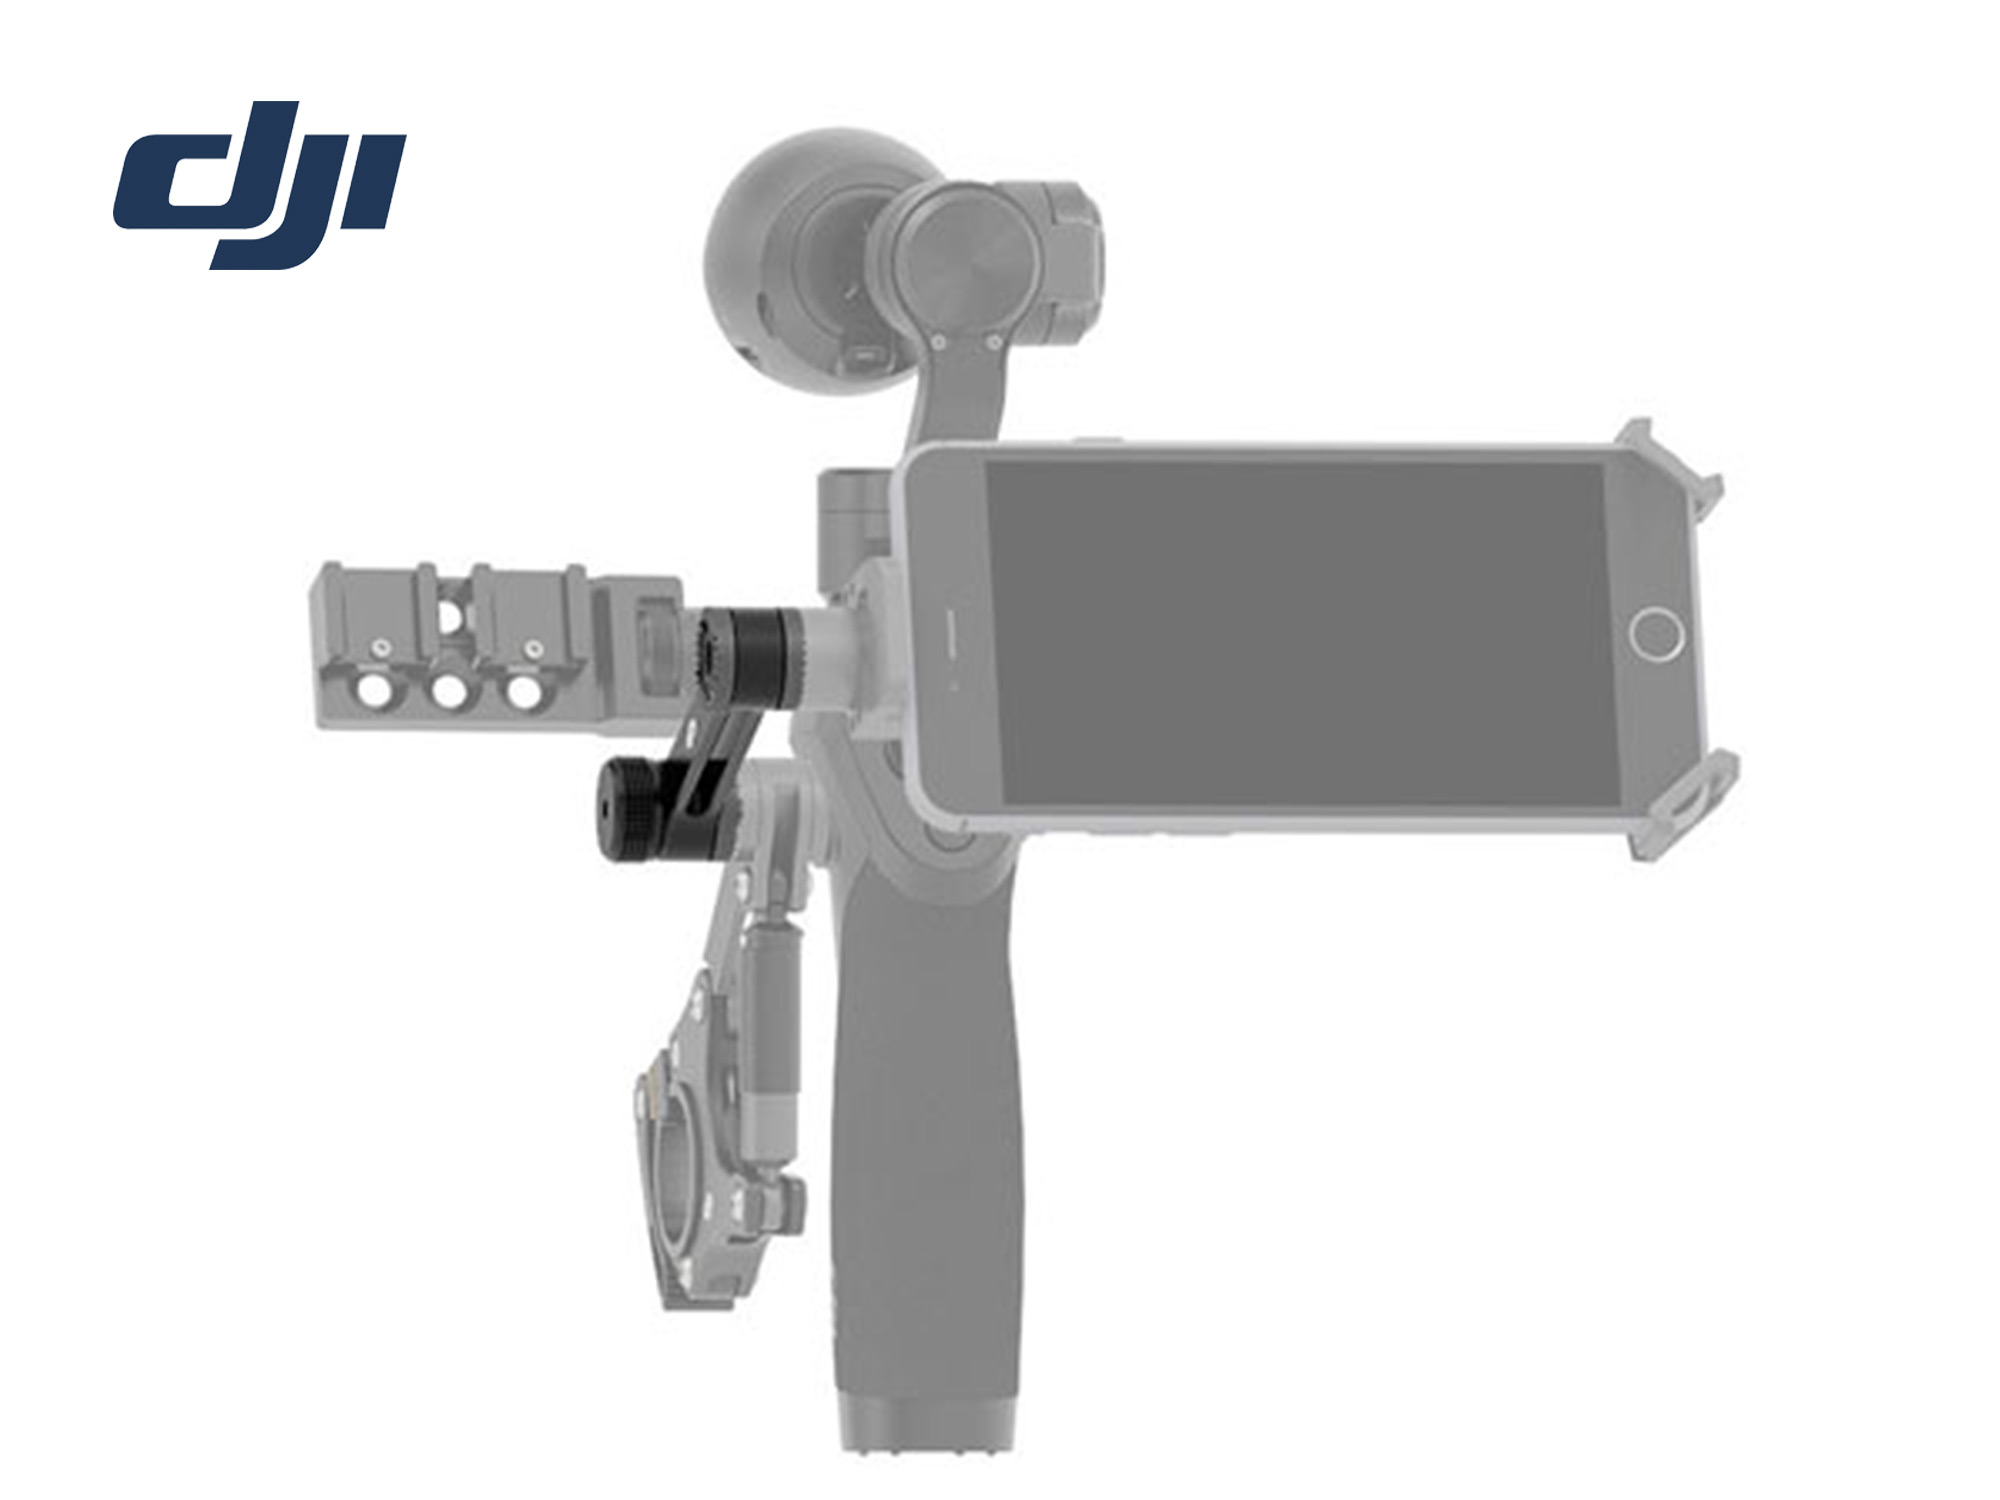 DJI Osmo Straight Extension Arm (Part 5)